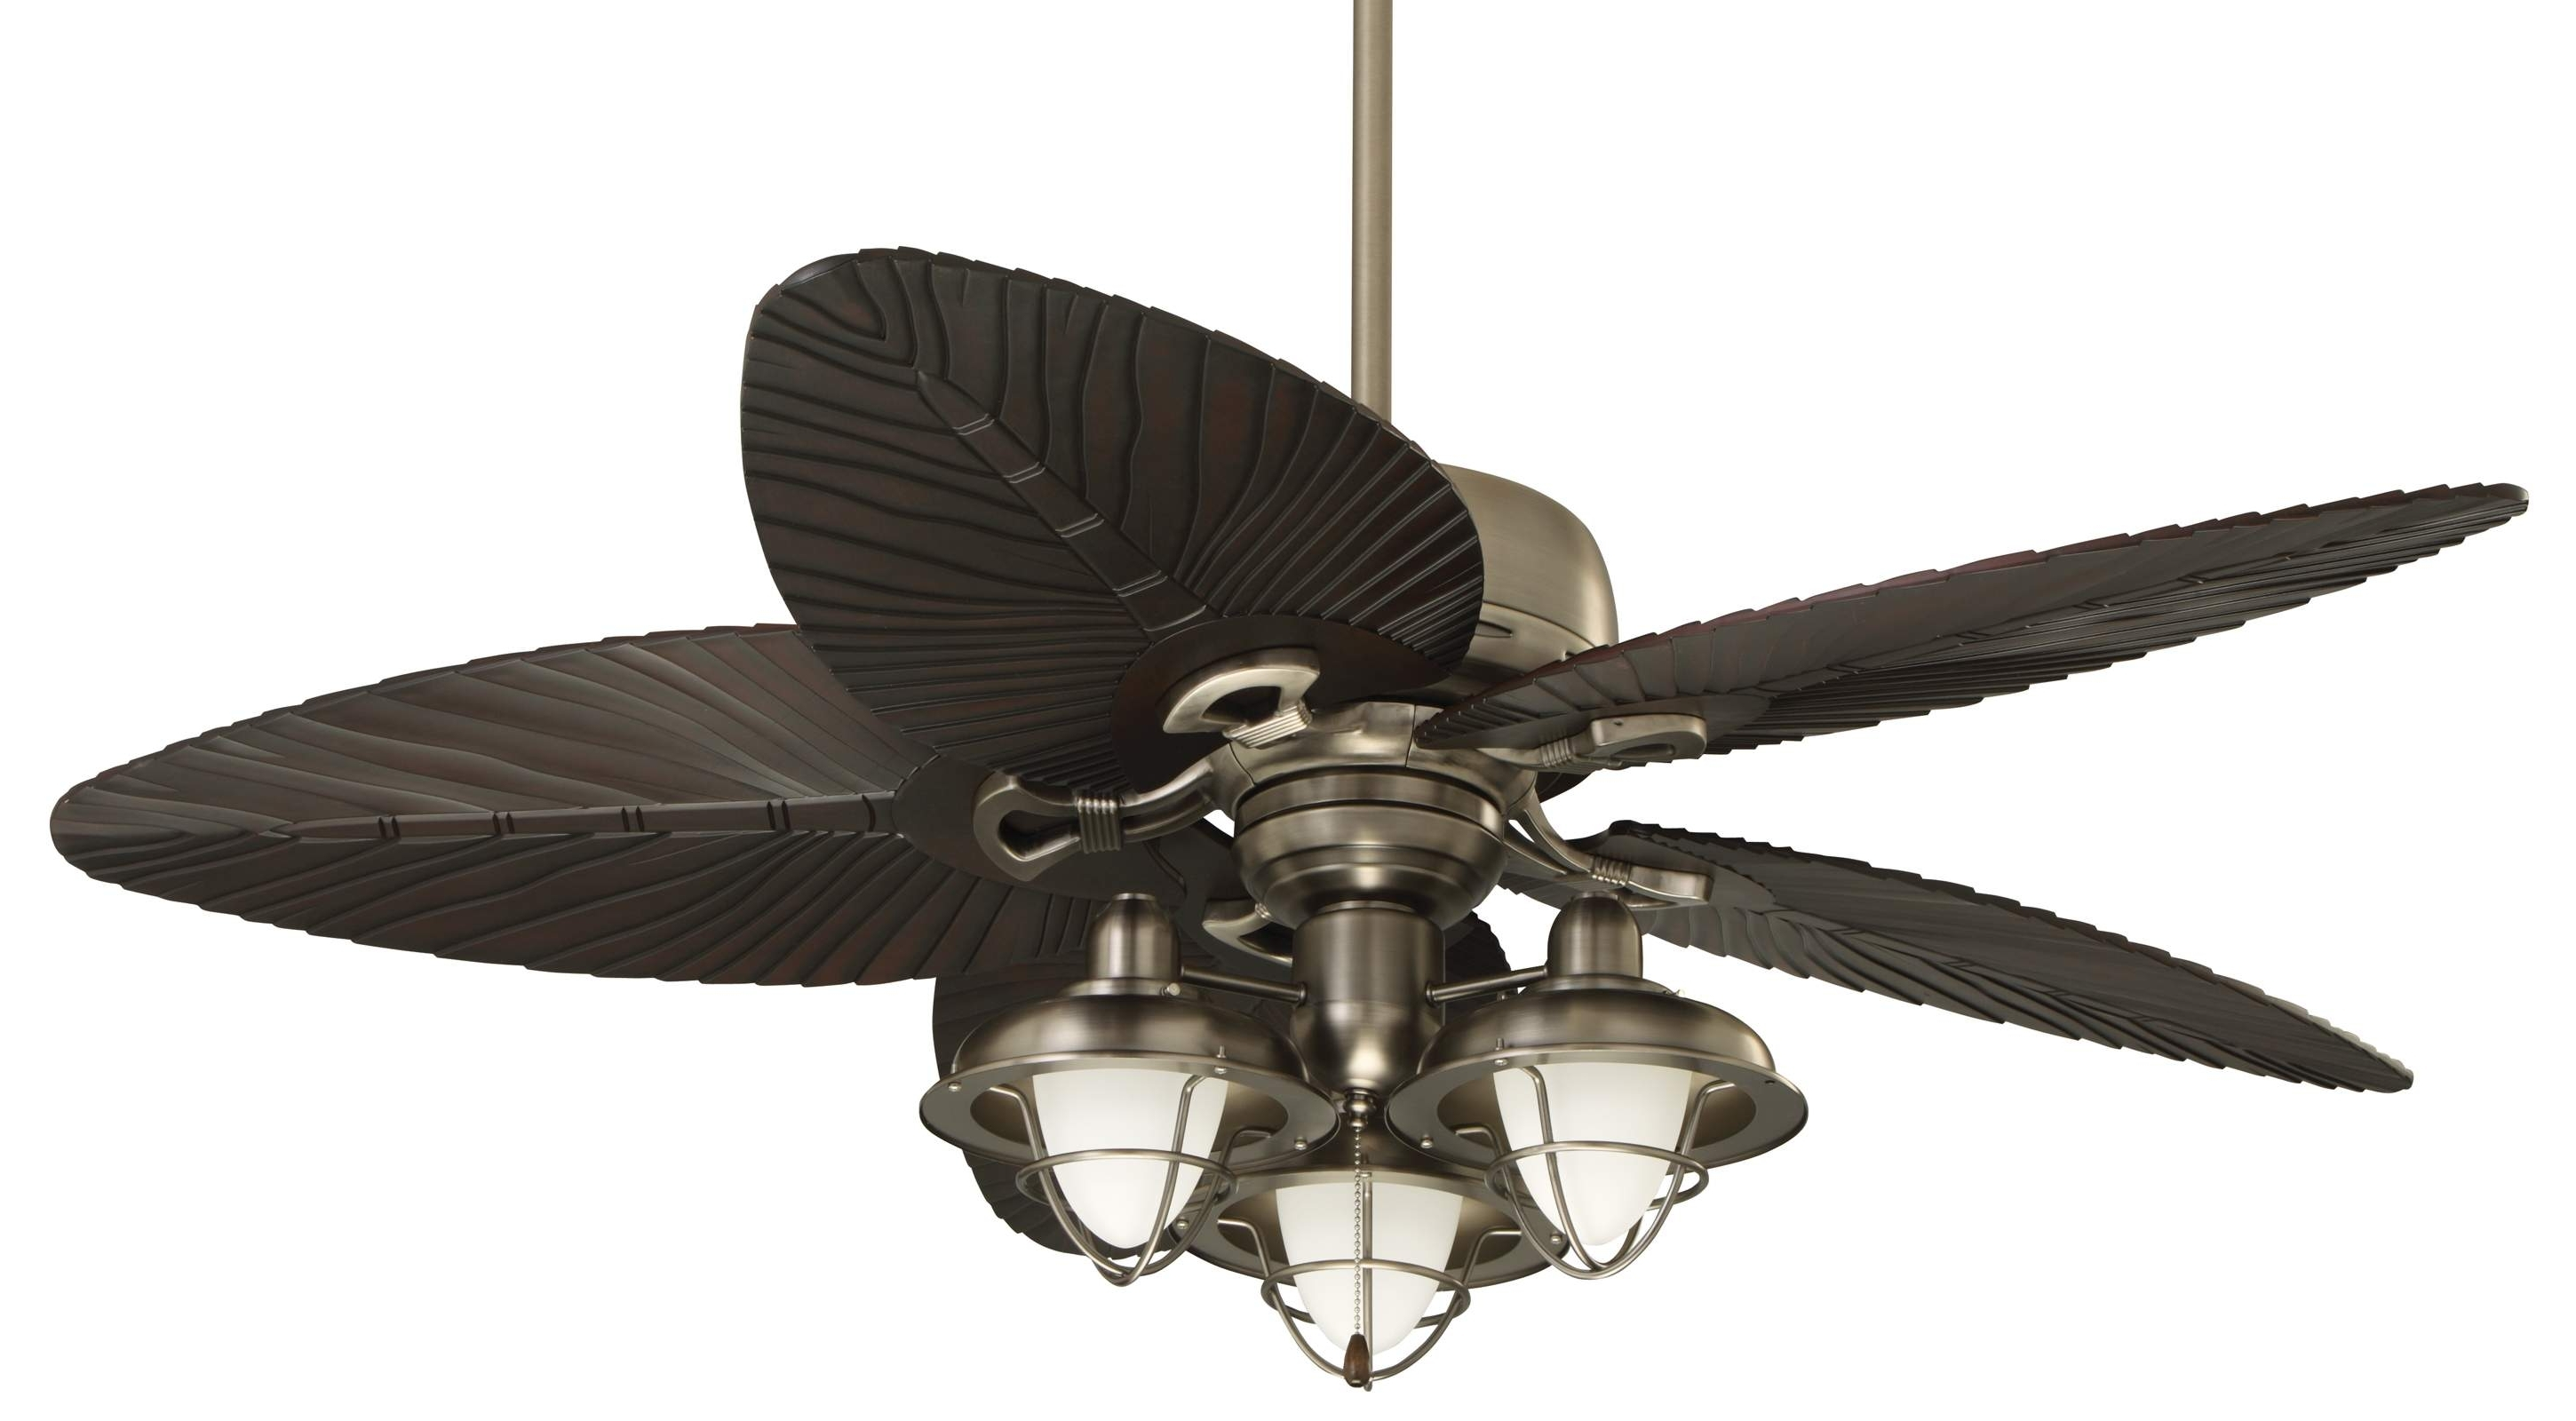 Decor: Bring An Island Look Into Your Home With Cool Ceiling Fan Pertaining To Well Liked Leaf Blades Outdoor Ceiling Fans (View 6 of 20)